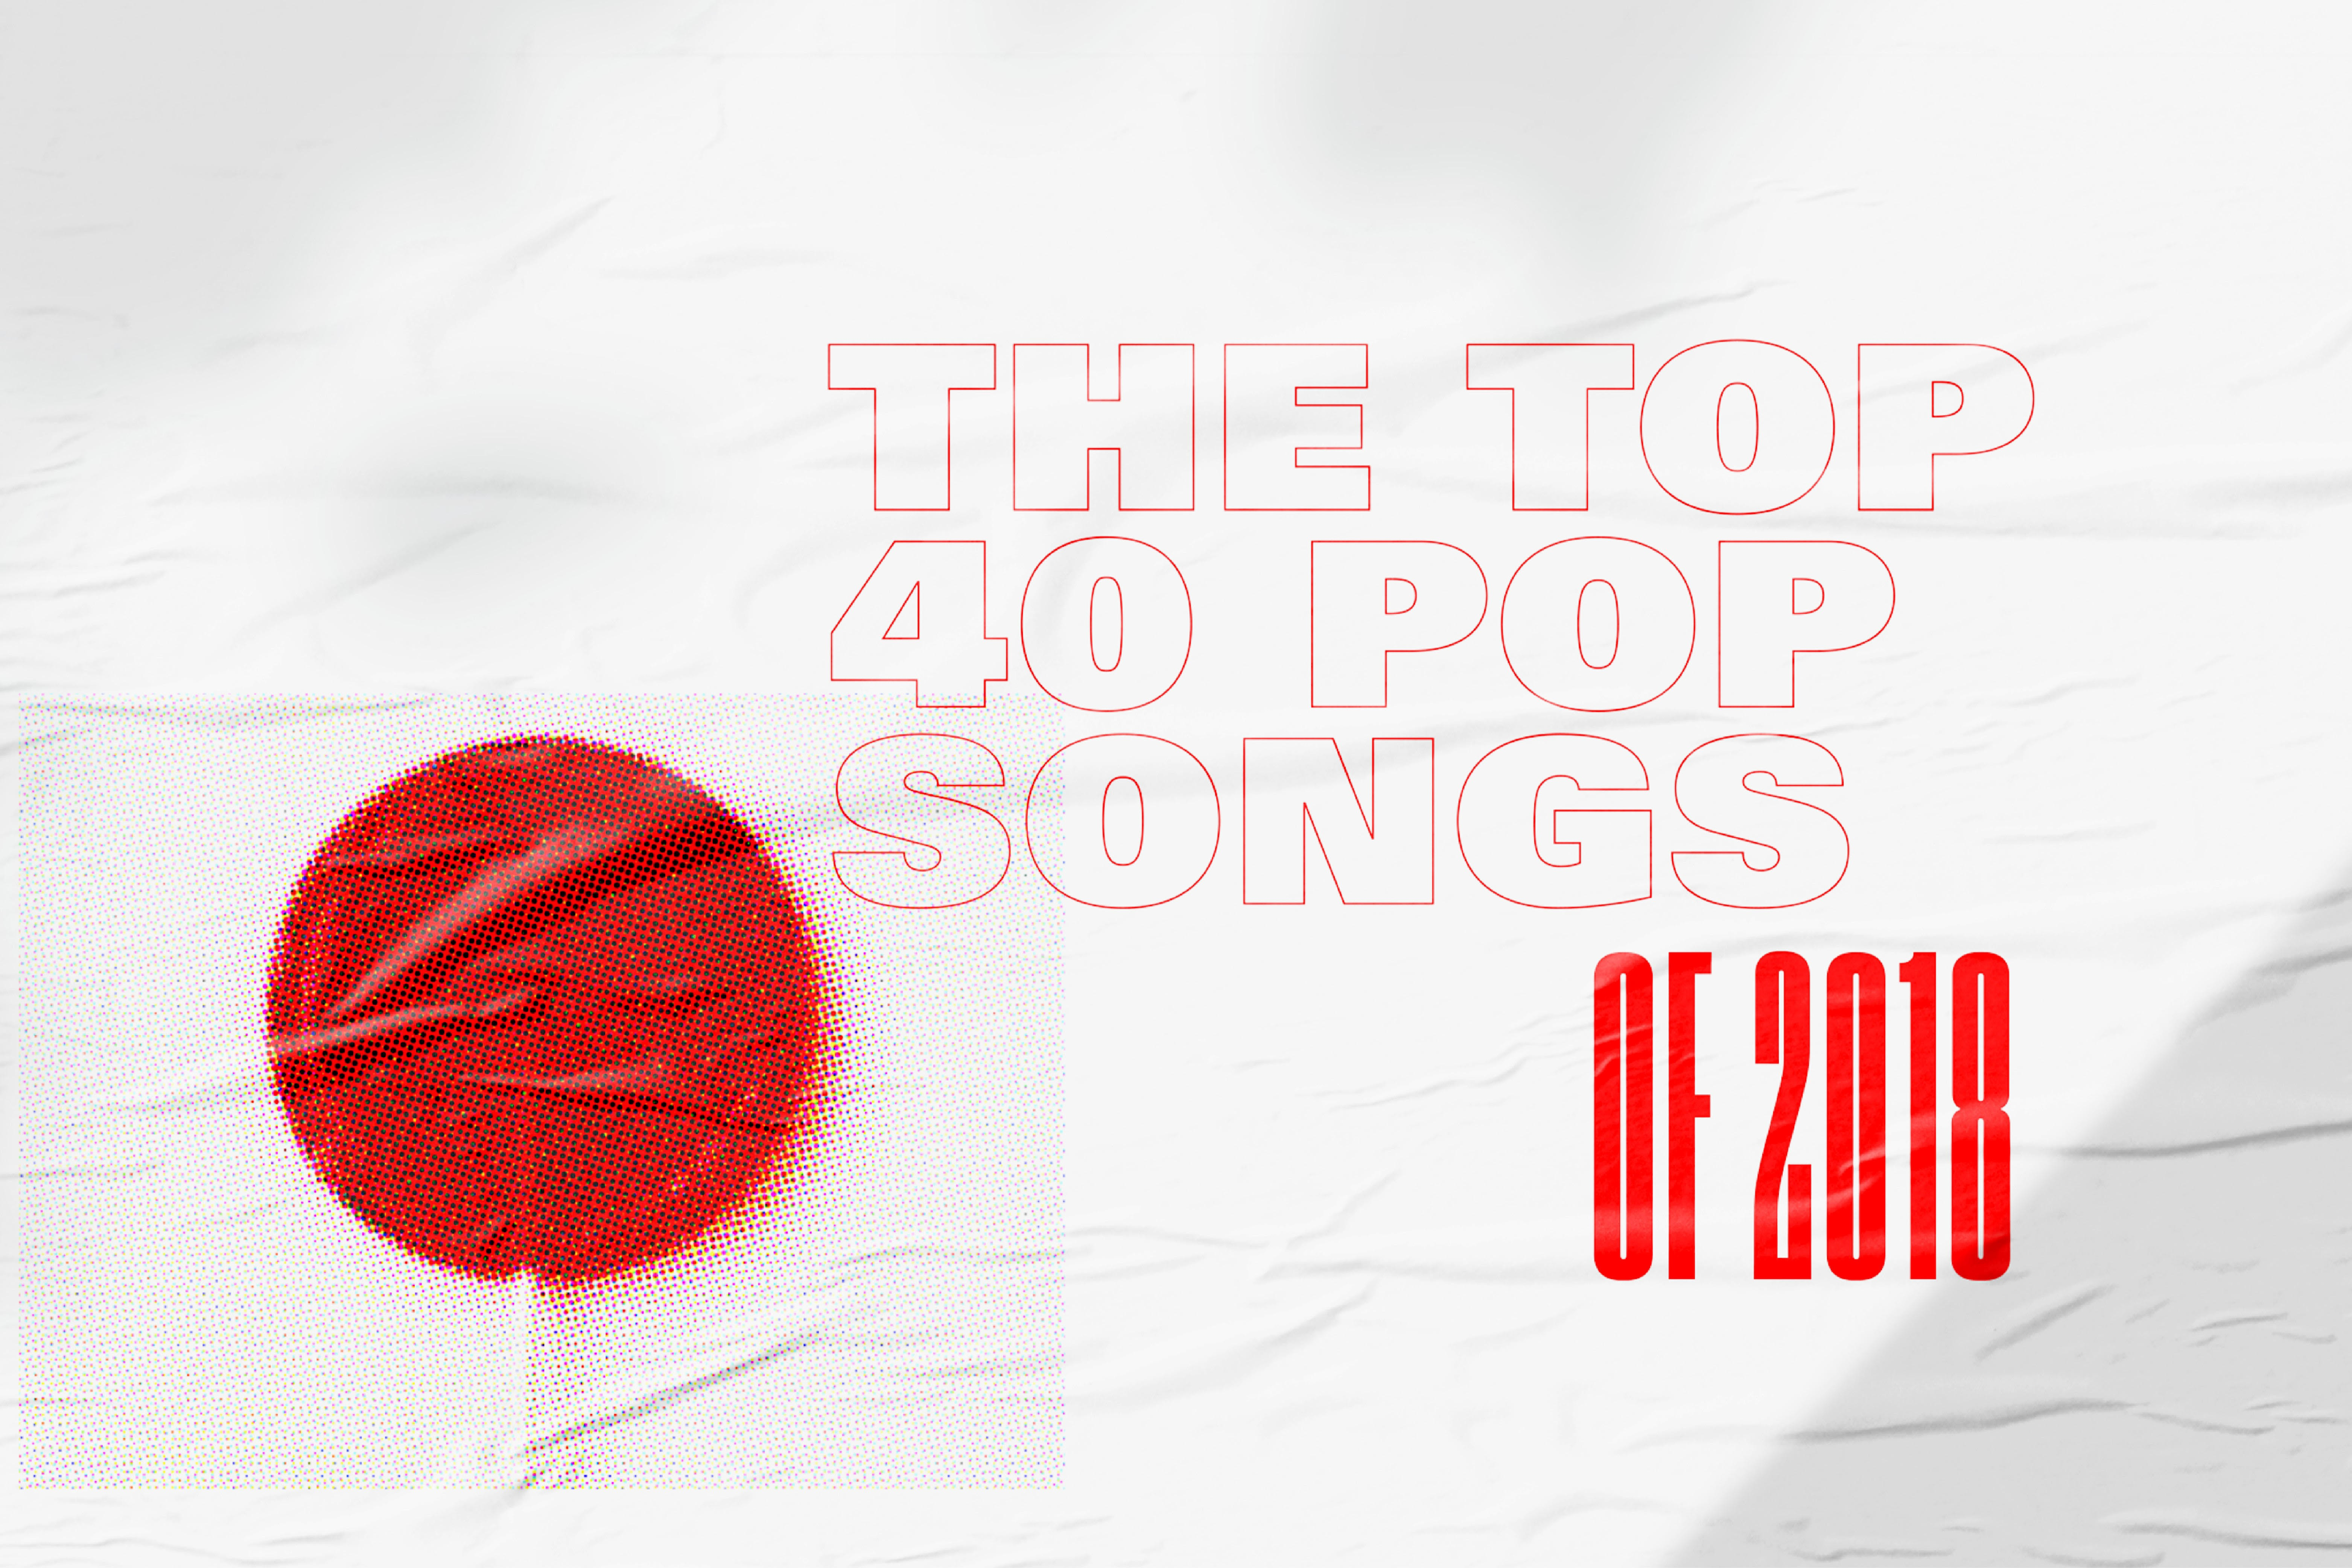 Most popular songs 2018 and 2019